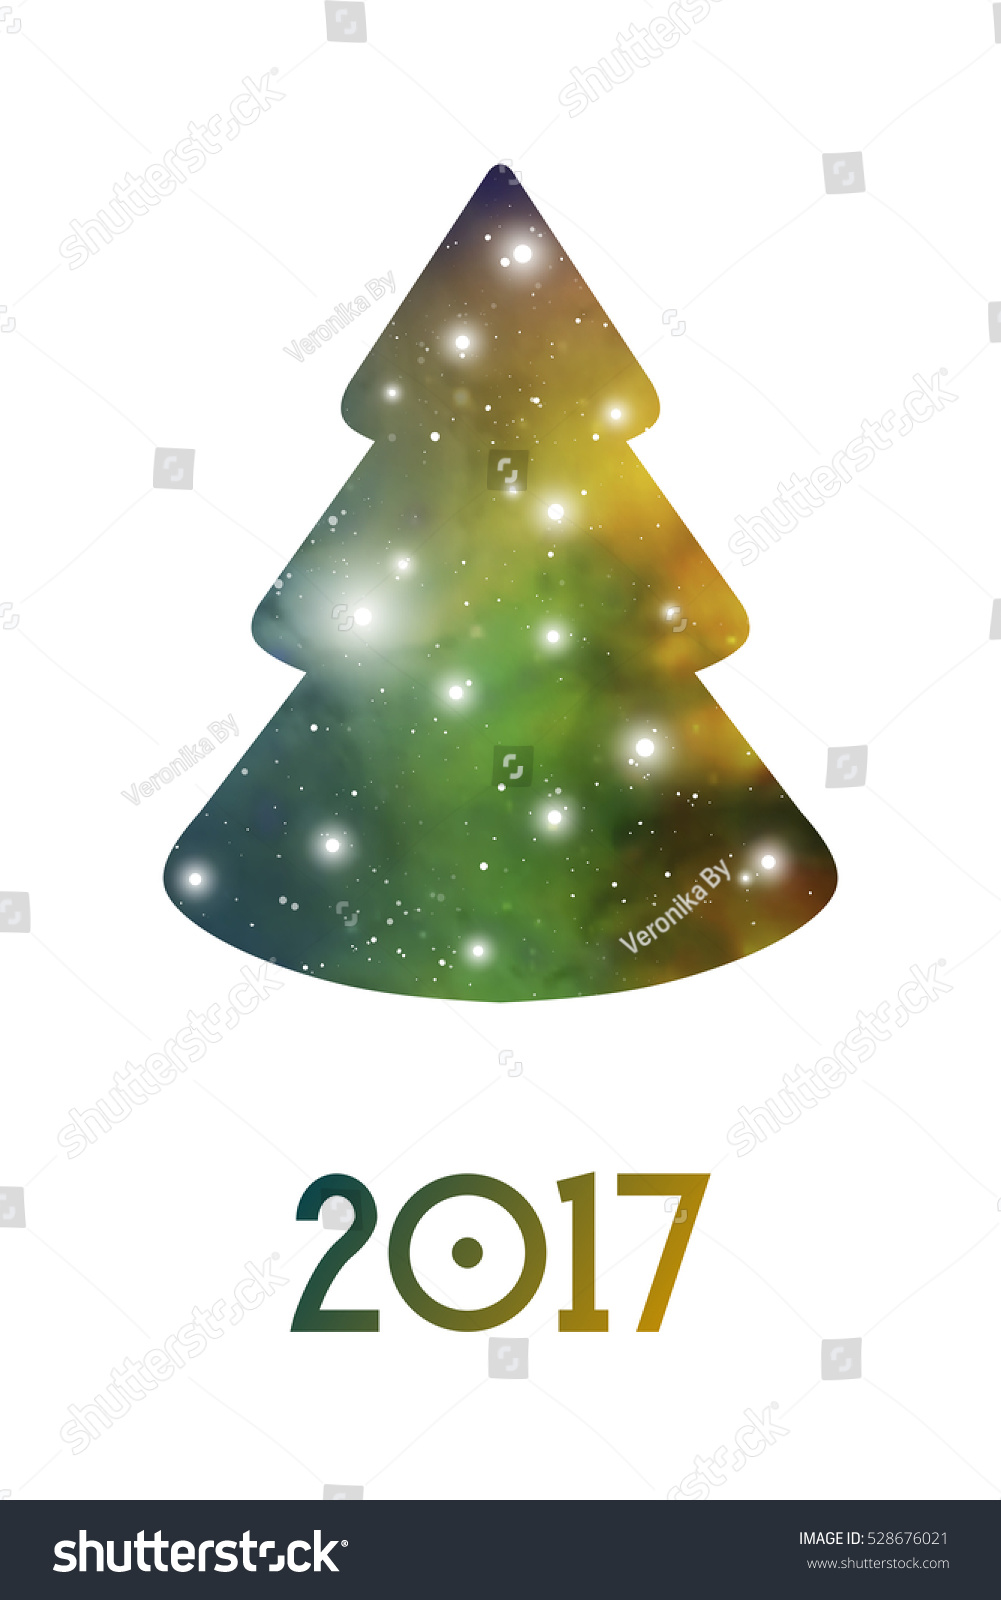 Simple Christmas Greeting Card New Year Stock Vector 528676021